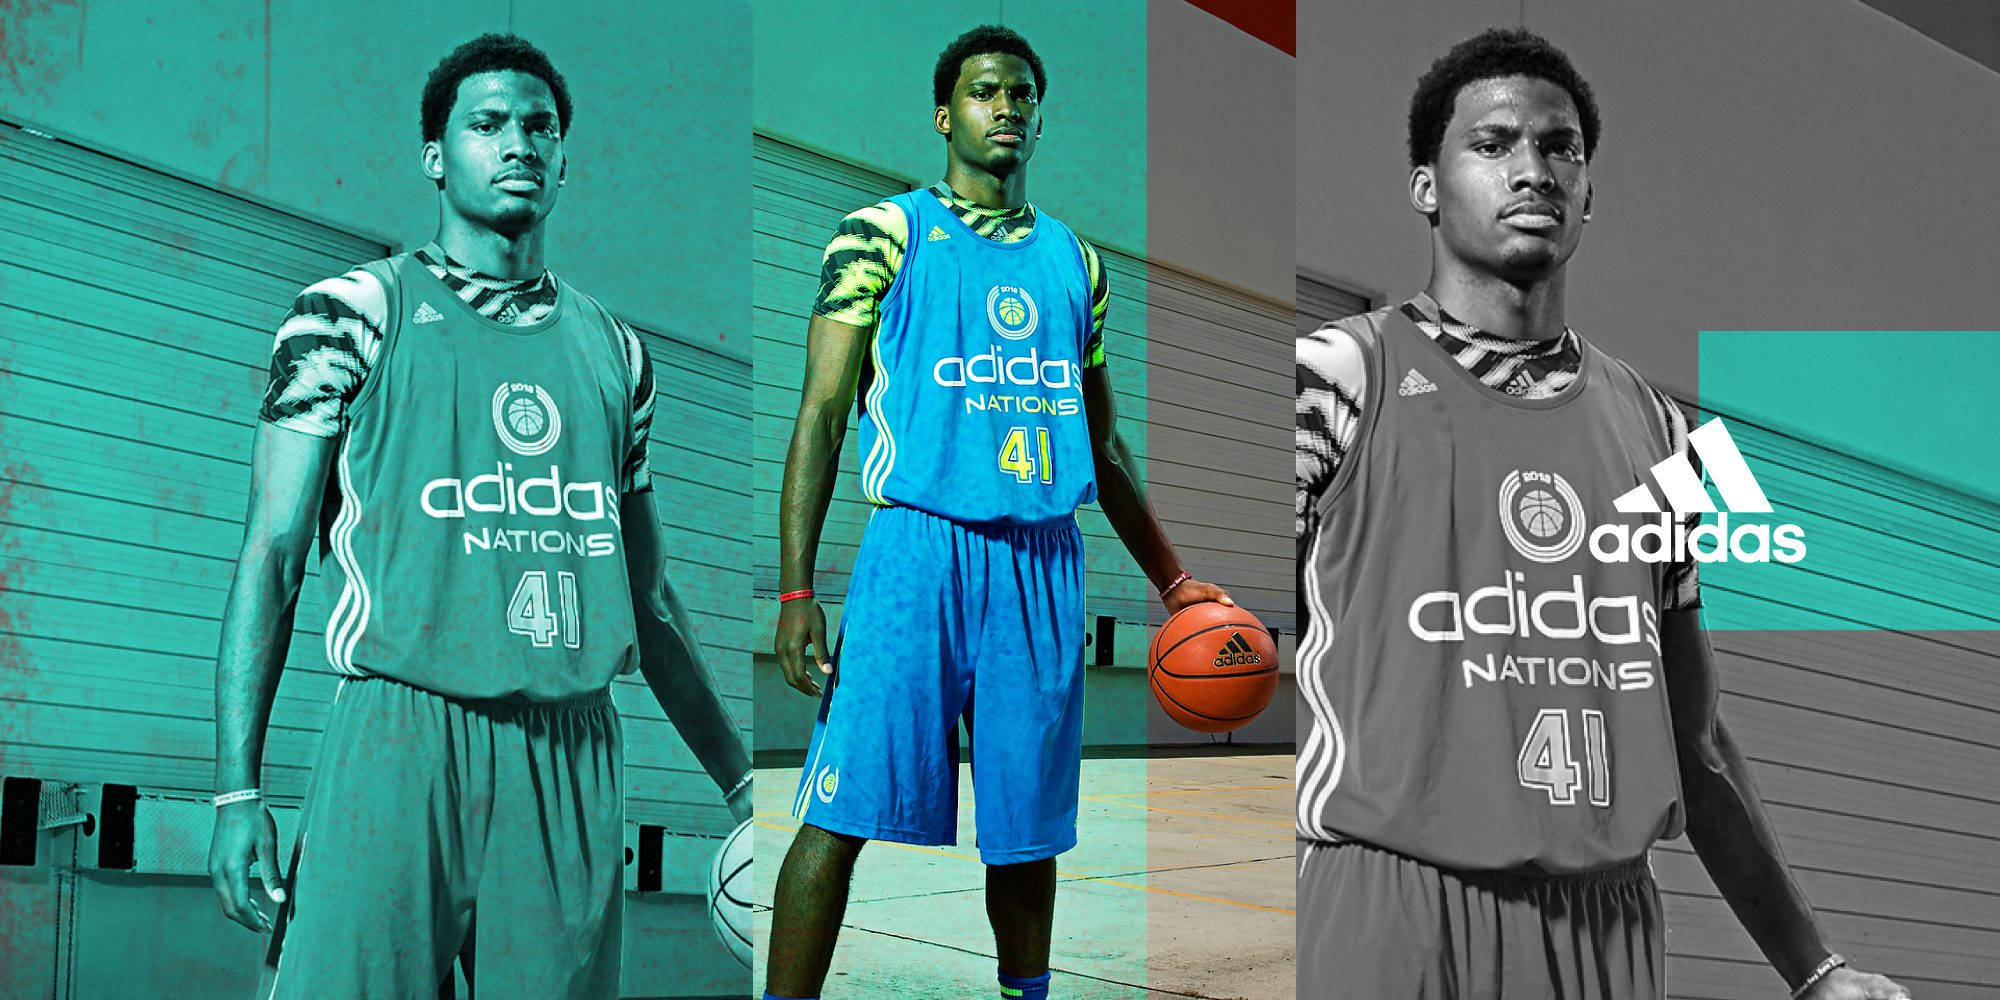 adidas_Justice Winslow_H